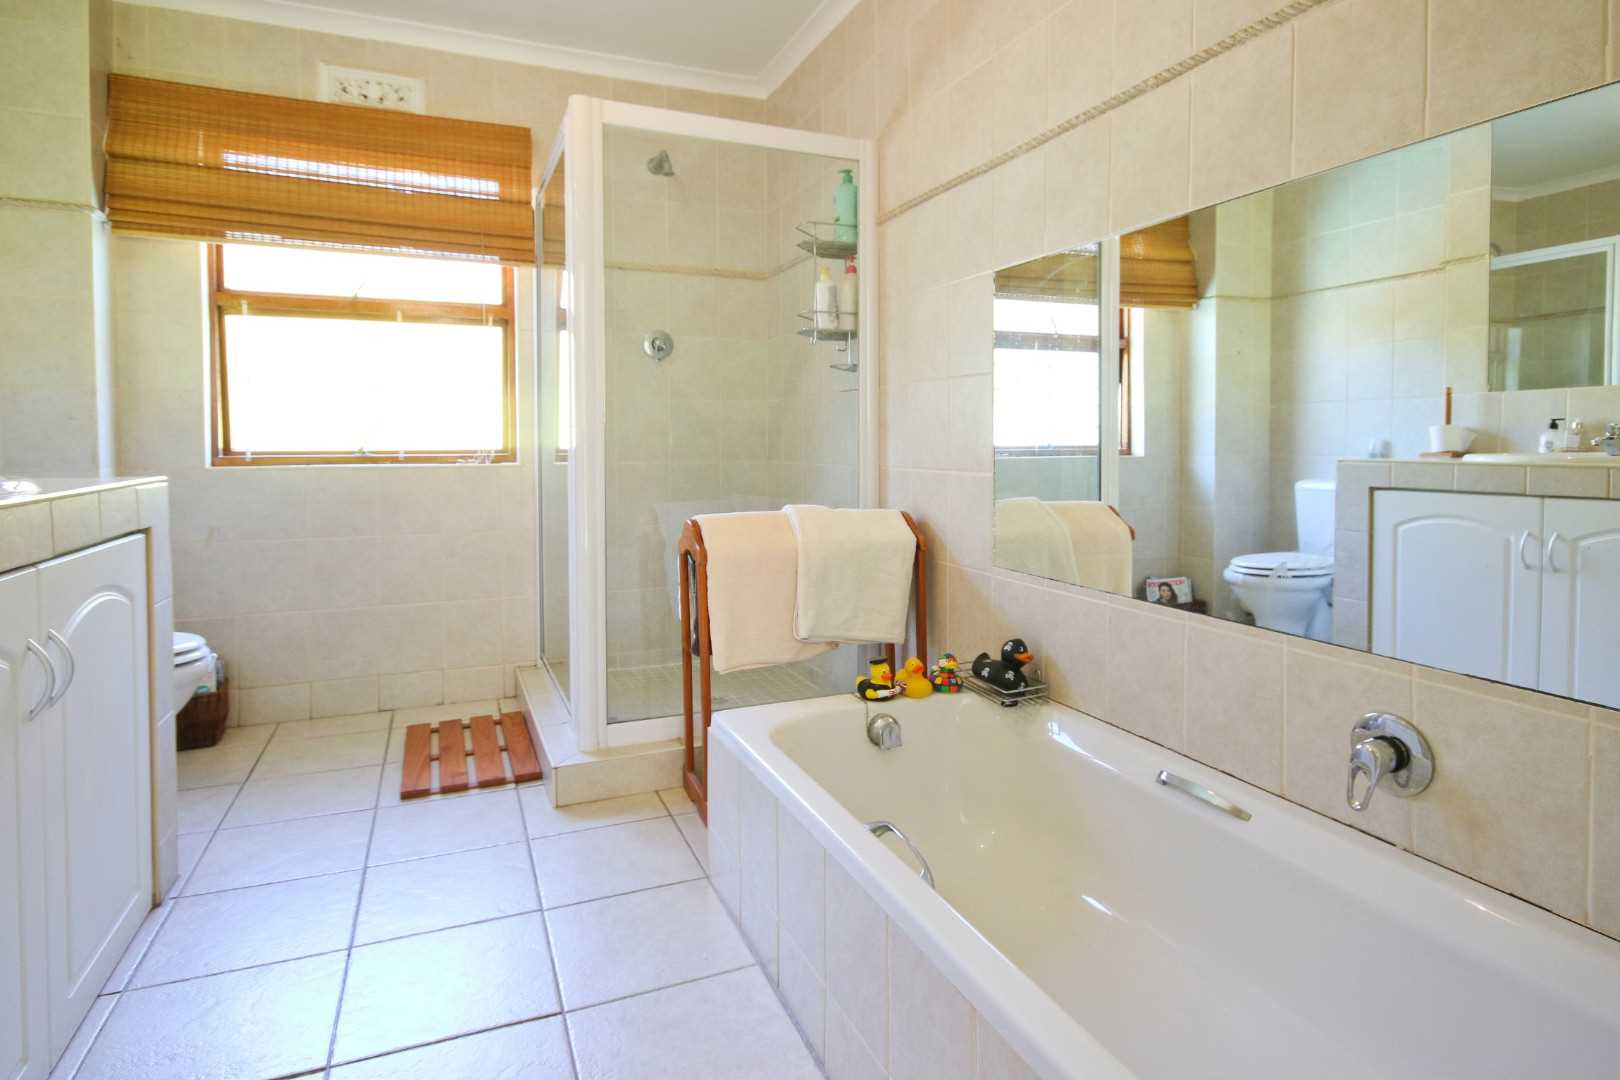 Full family bathroom (upstairs)